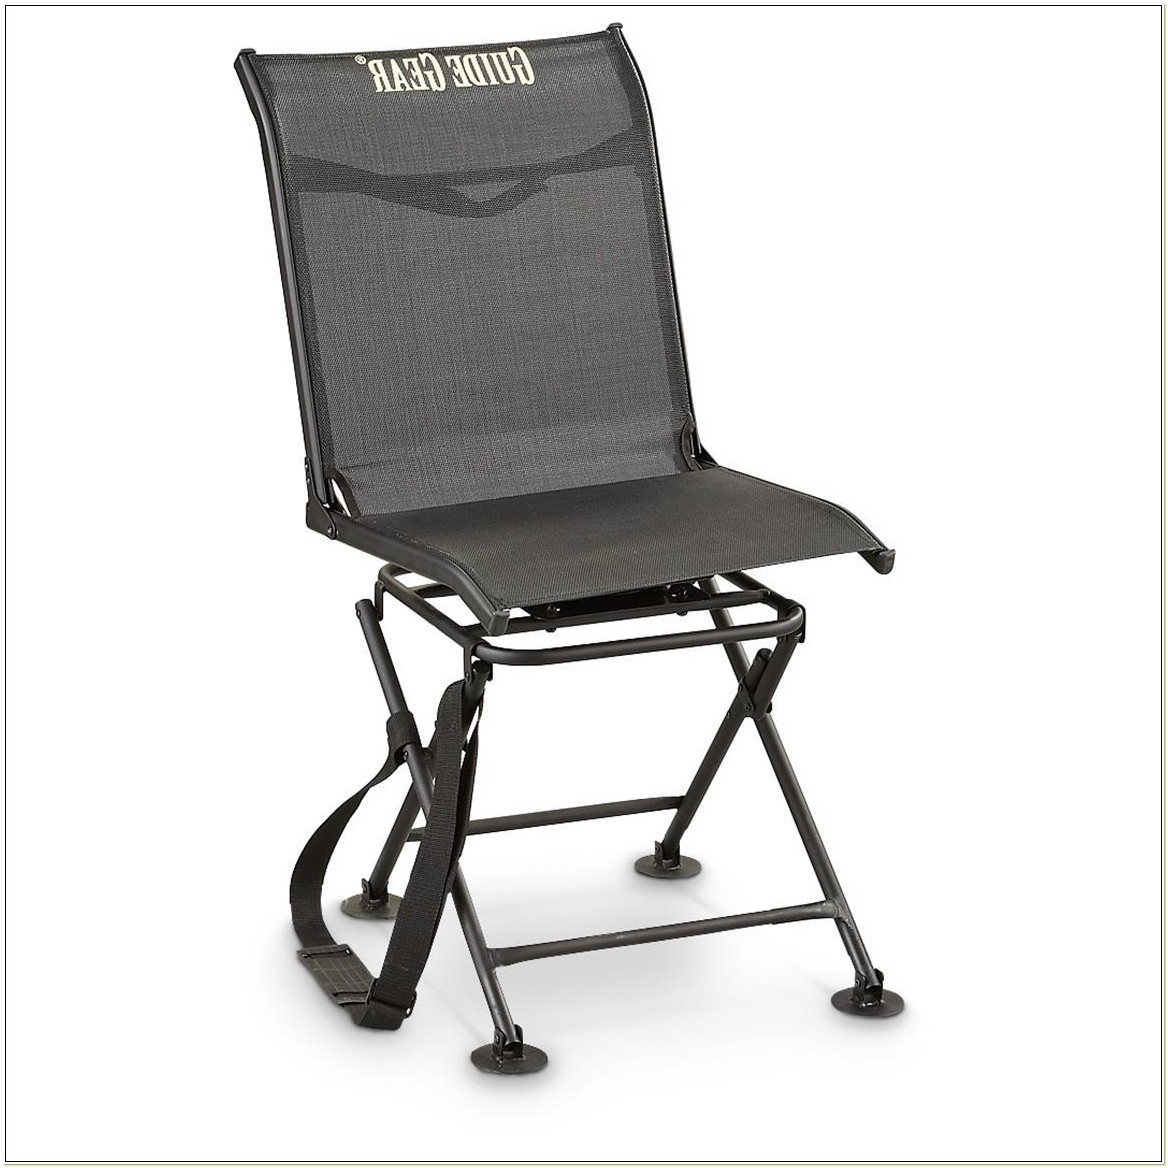 Chairs For Deer Blinds